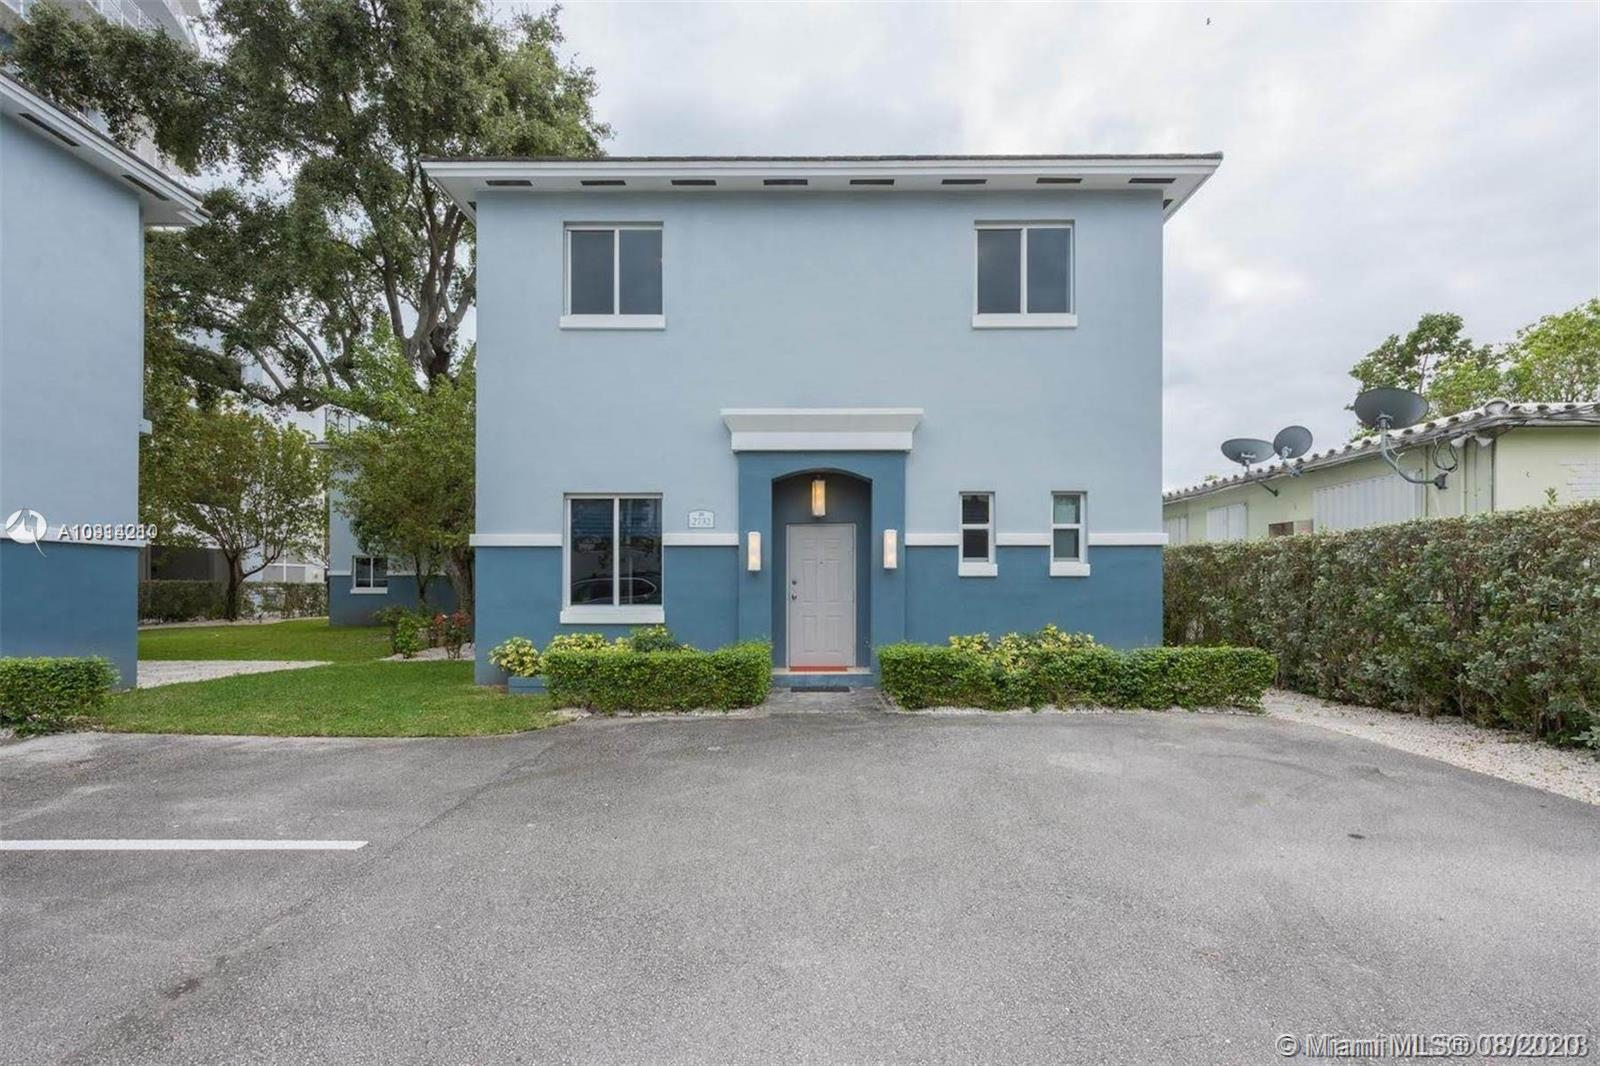 Style and elegance meet in this spacious Coconut Grove impeccable townhouse. This 3/2 home has been completely remodeled and flooded with natural light. Amazing location! Steps from the Metrorail, restaurants, Publix, Starbucks, excellent schools & shopping. Close to Downtown, Miami Beach, airport, US1, I-95 & 836. This home offers an open concept contemporary kitchen, rich dark wood floors, steel framed staircase, impact windows, updated bathrooms, enormous storage space, washer and dryer and much much more. Association offers an indoor heated pool, gym, guest parking and lawn maintenance.